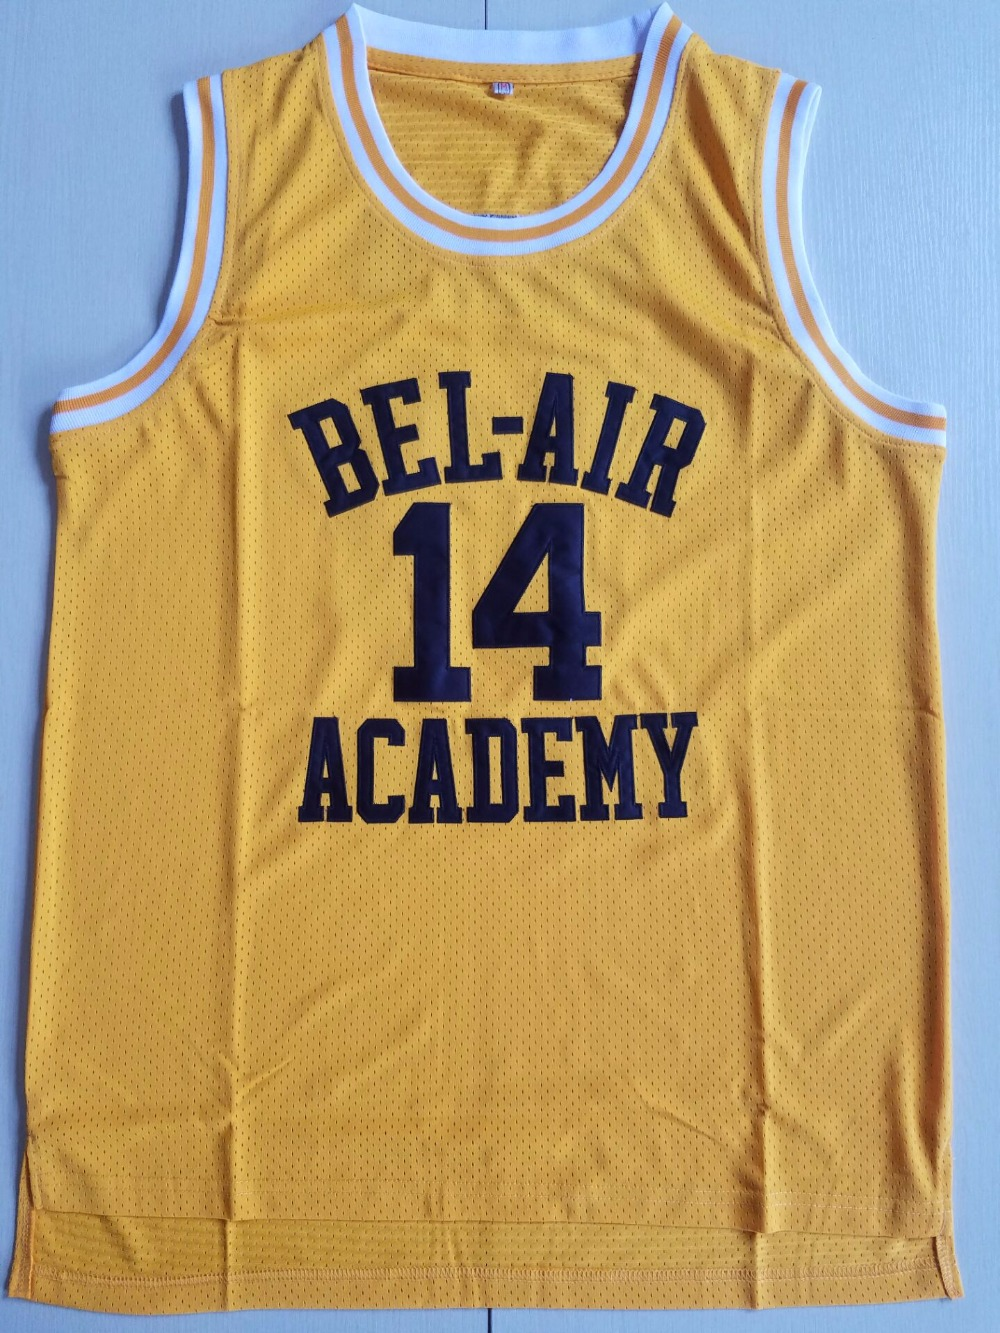 BONJEAN Cheap Throwback Basketball Jerseys 14 Will Smith Bel Air Academy  Yellow Jersey Stitched Retro Mens Shirts 3c2ccb53a1e3